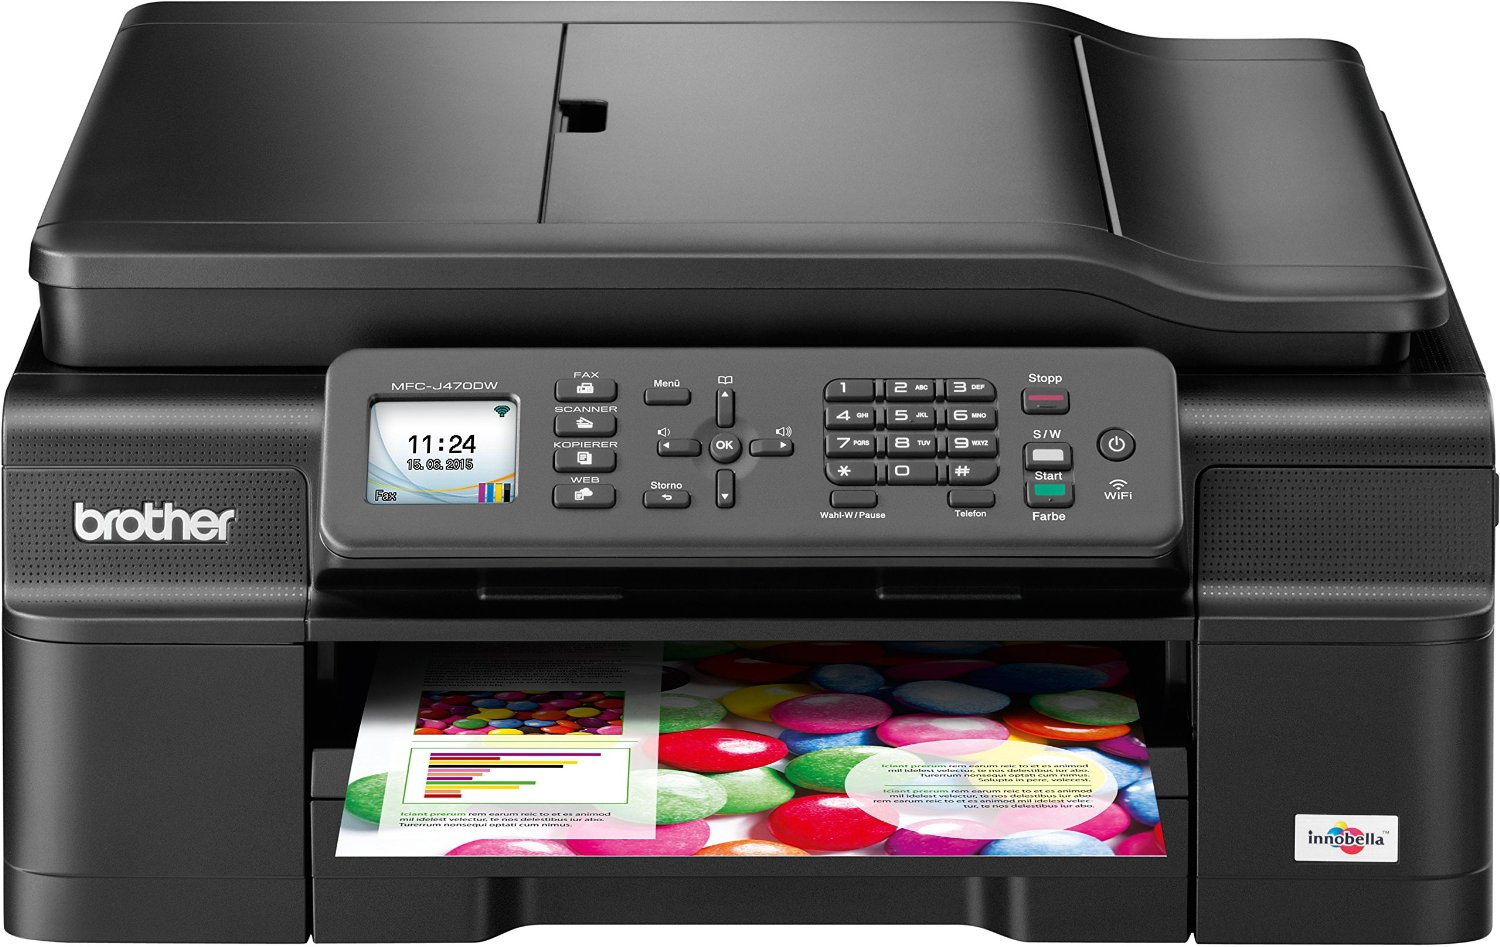 Drivers For Brother Printer Mfc-j470dw